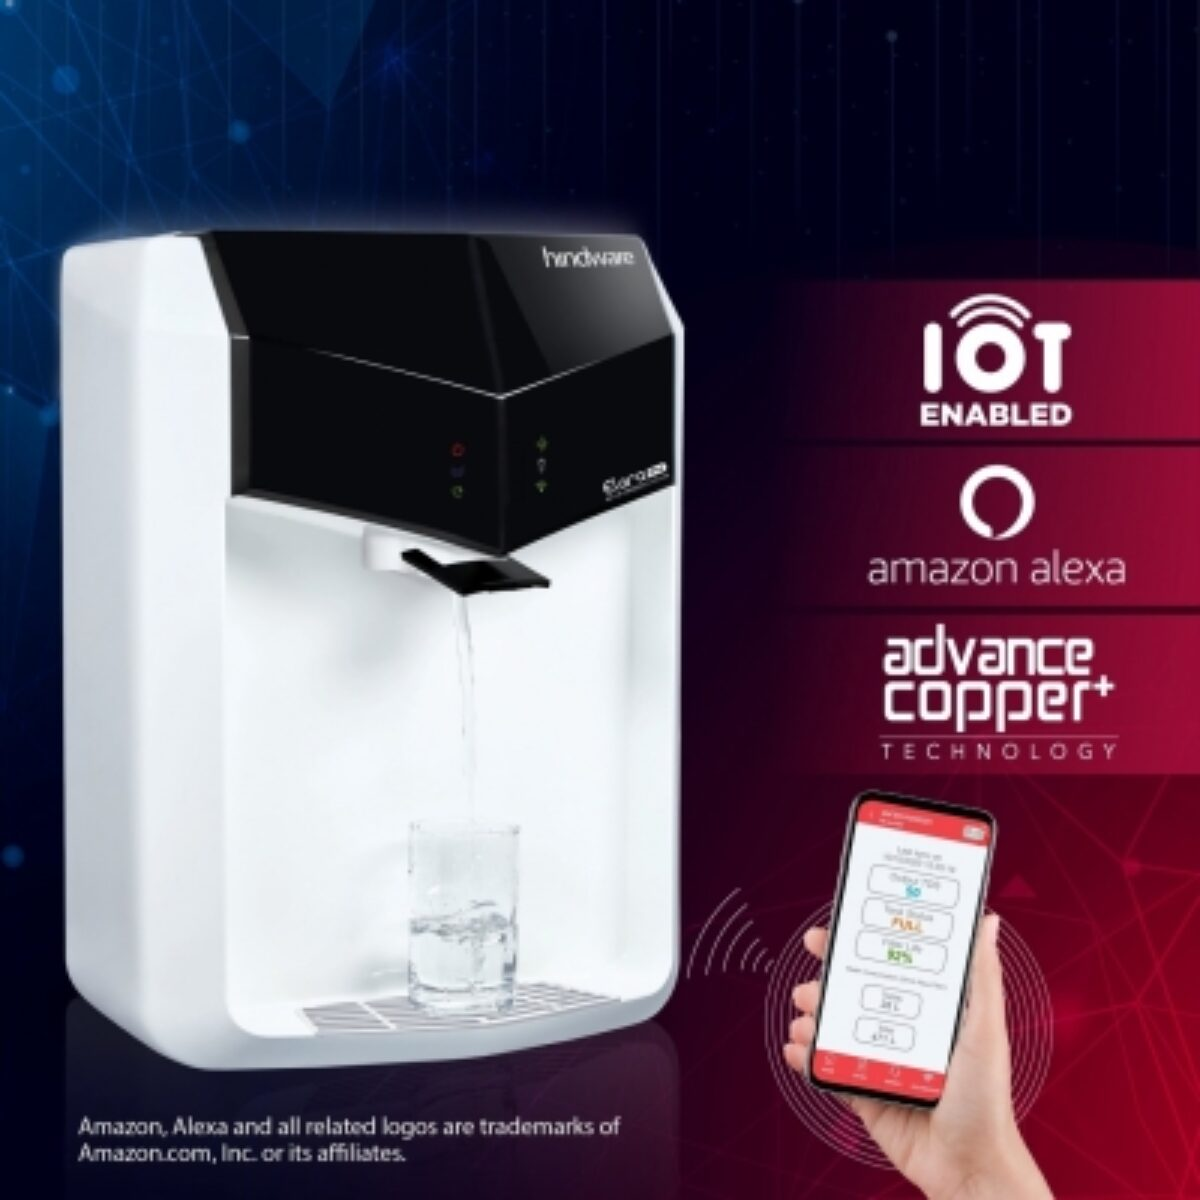 siasat.com - News Desk 1 - Hindware Appliances launches disruptive range of IoT appliances for connected homes